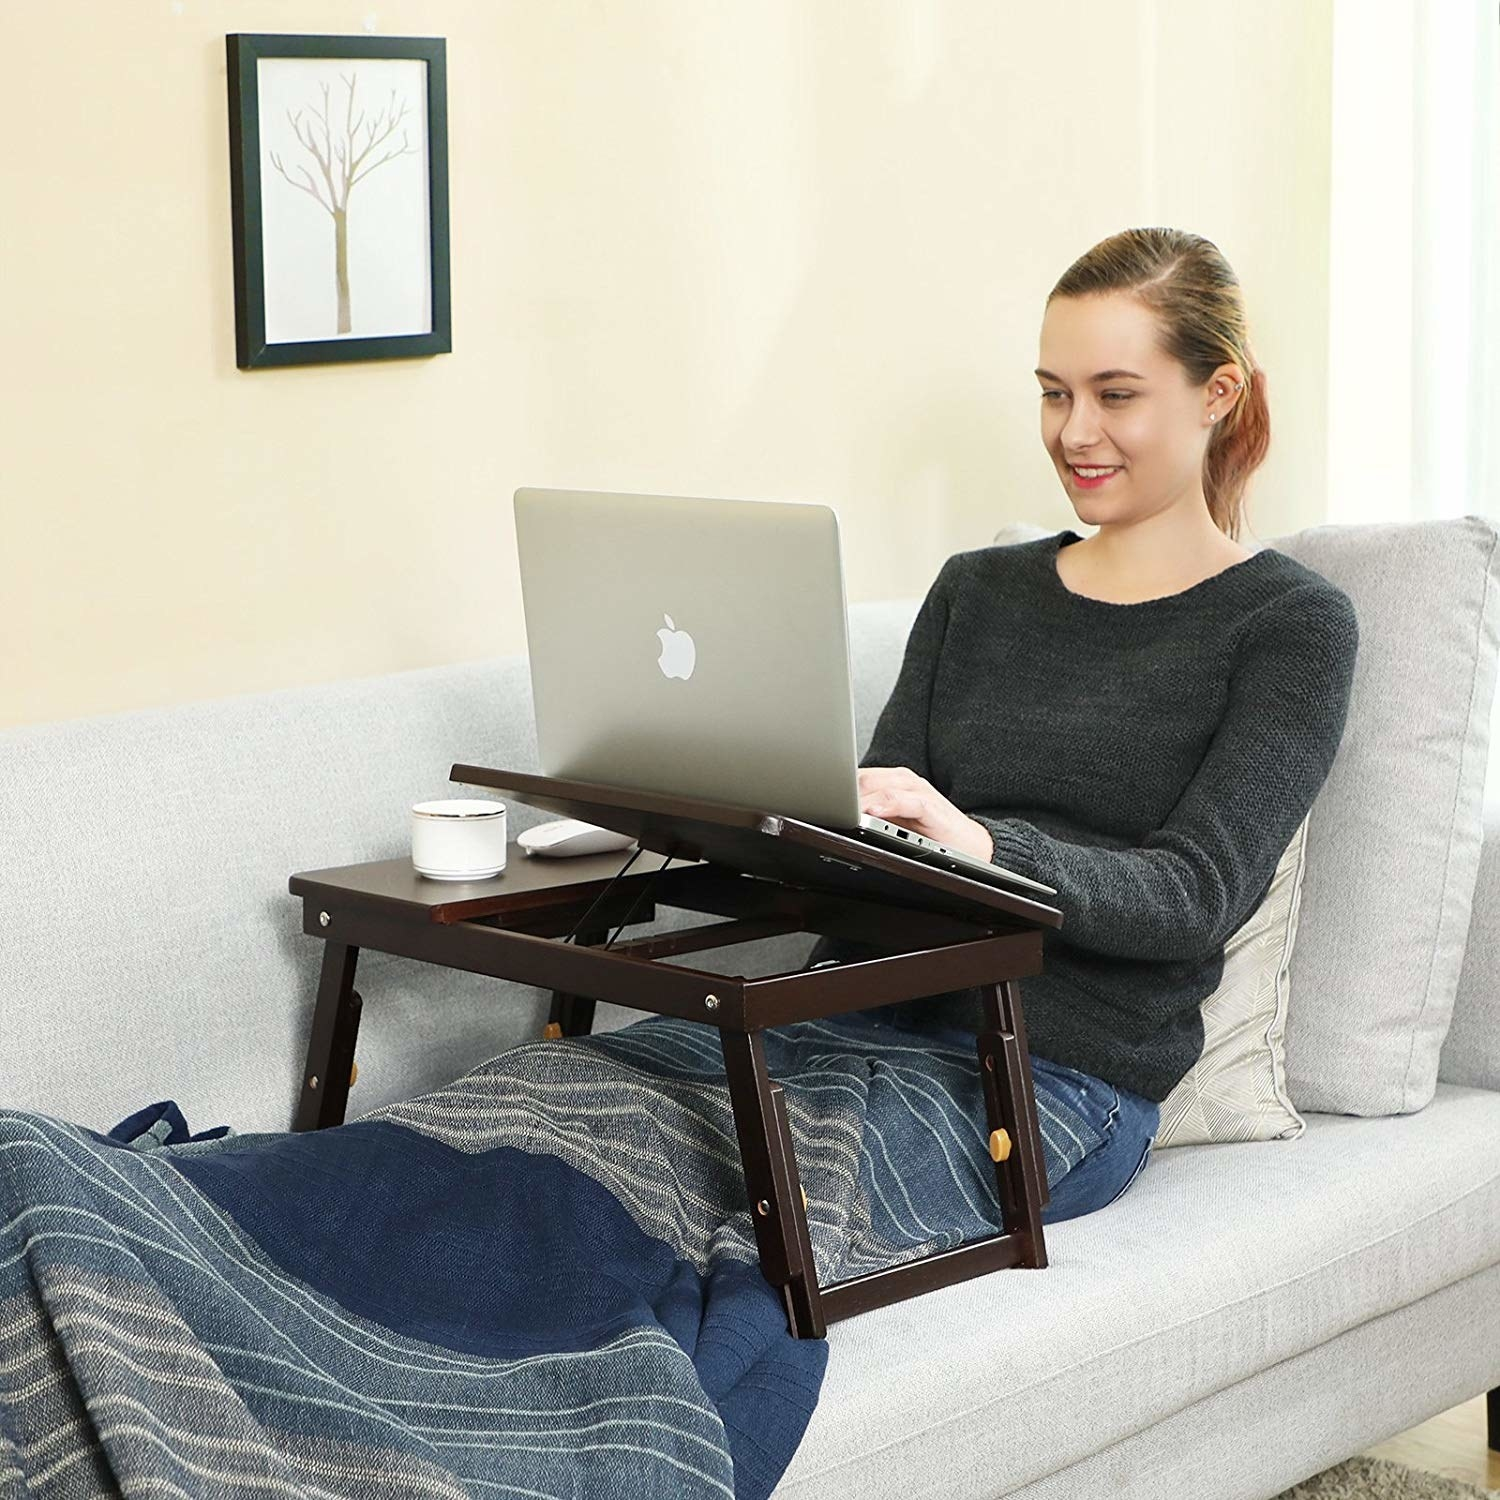 model with the brown wood desk over their lap on a couch with one half raised up, bringing a laptop higher